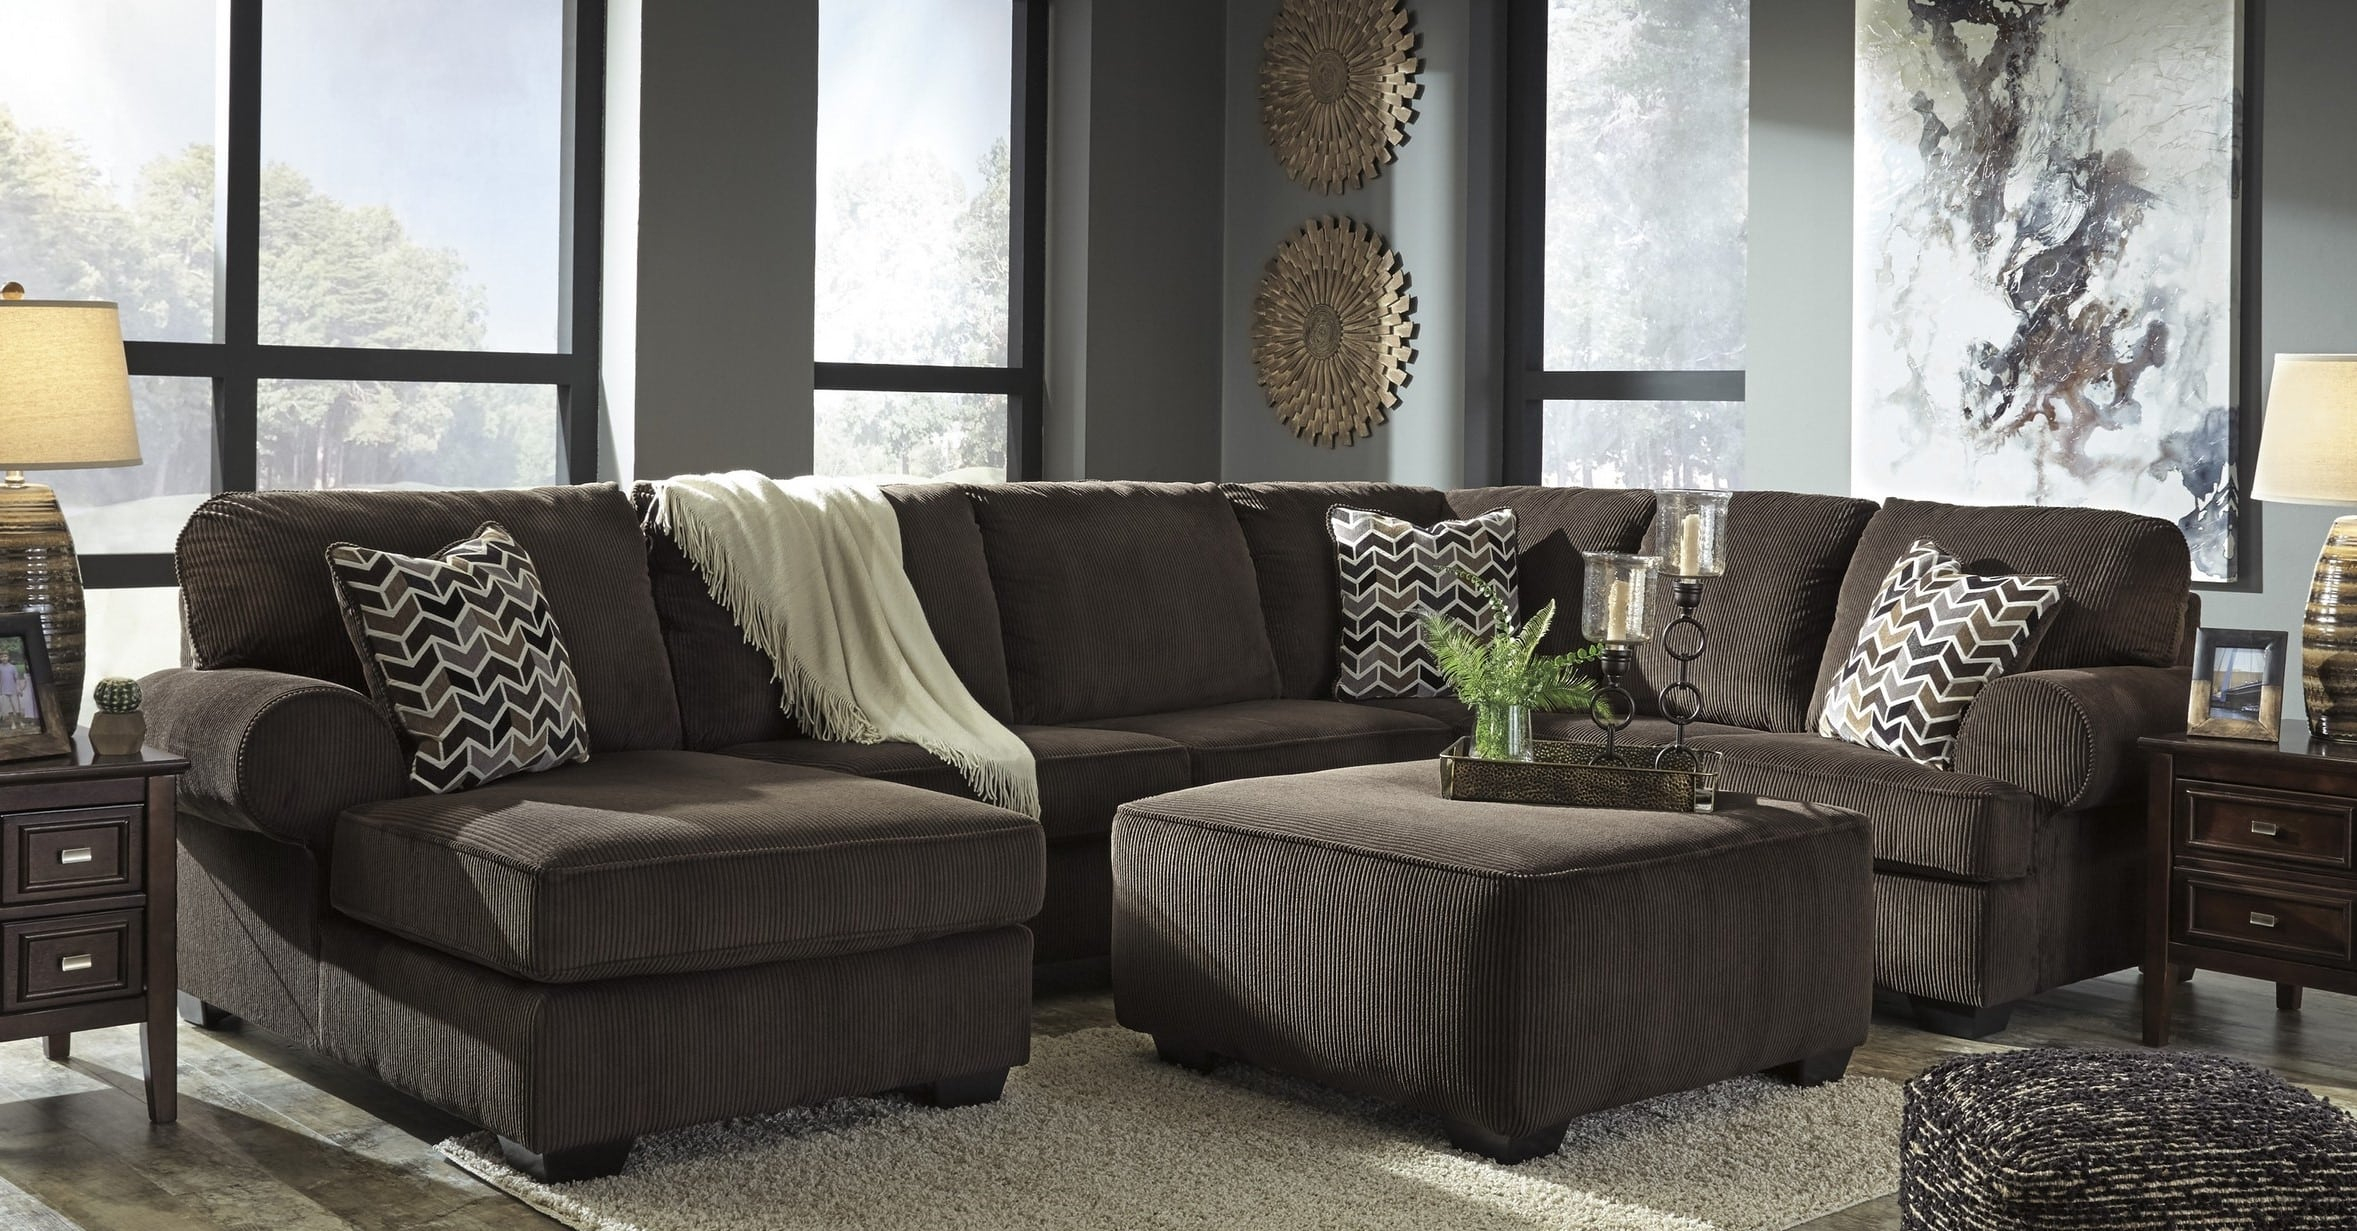 Signature Design Ashley Jinllingsly Chocolate 4 Piece Living Room pertaining to 12 Awesome Concepts of How to Craft Chocolate Living Room Set